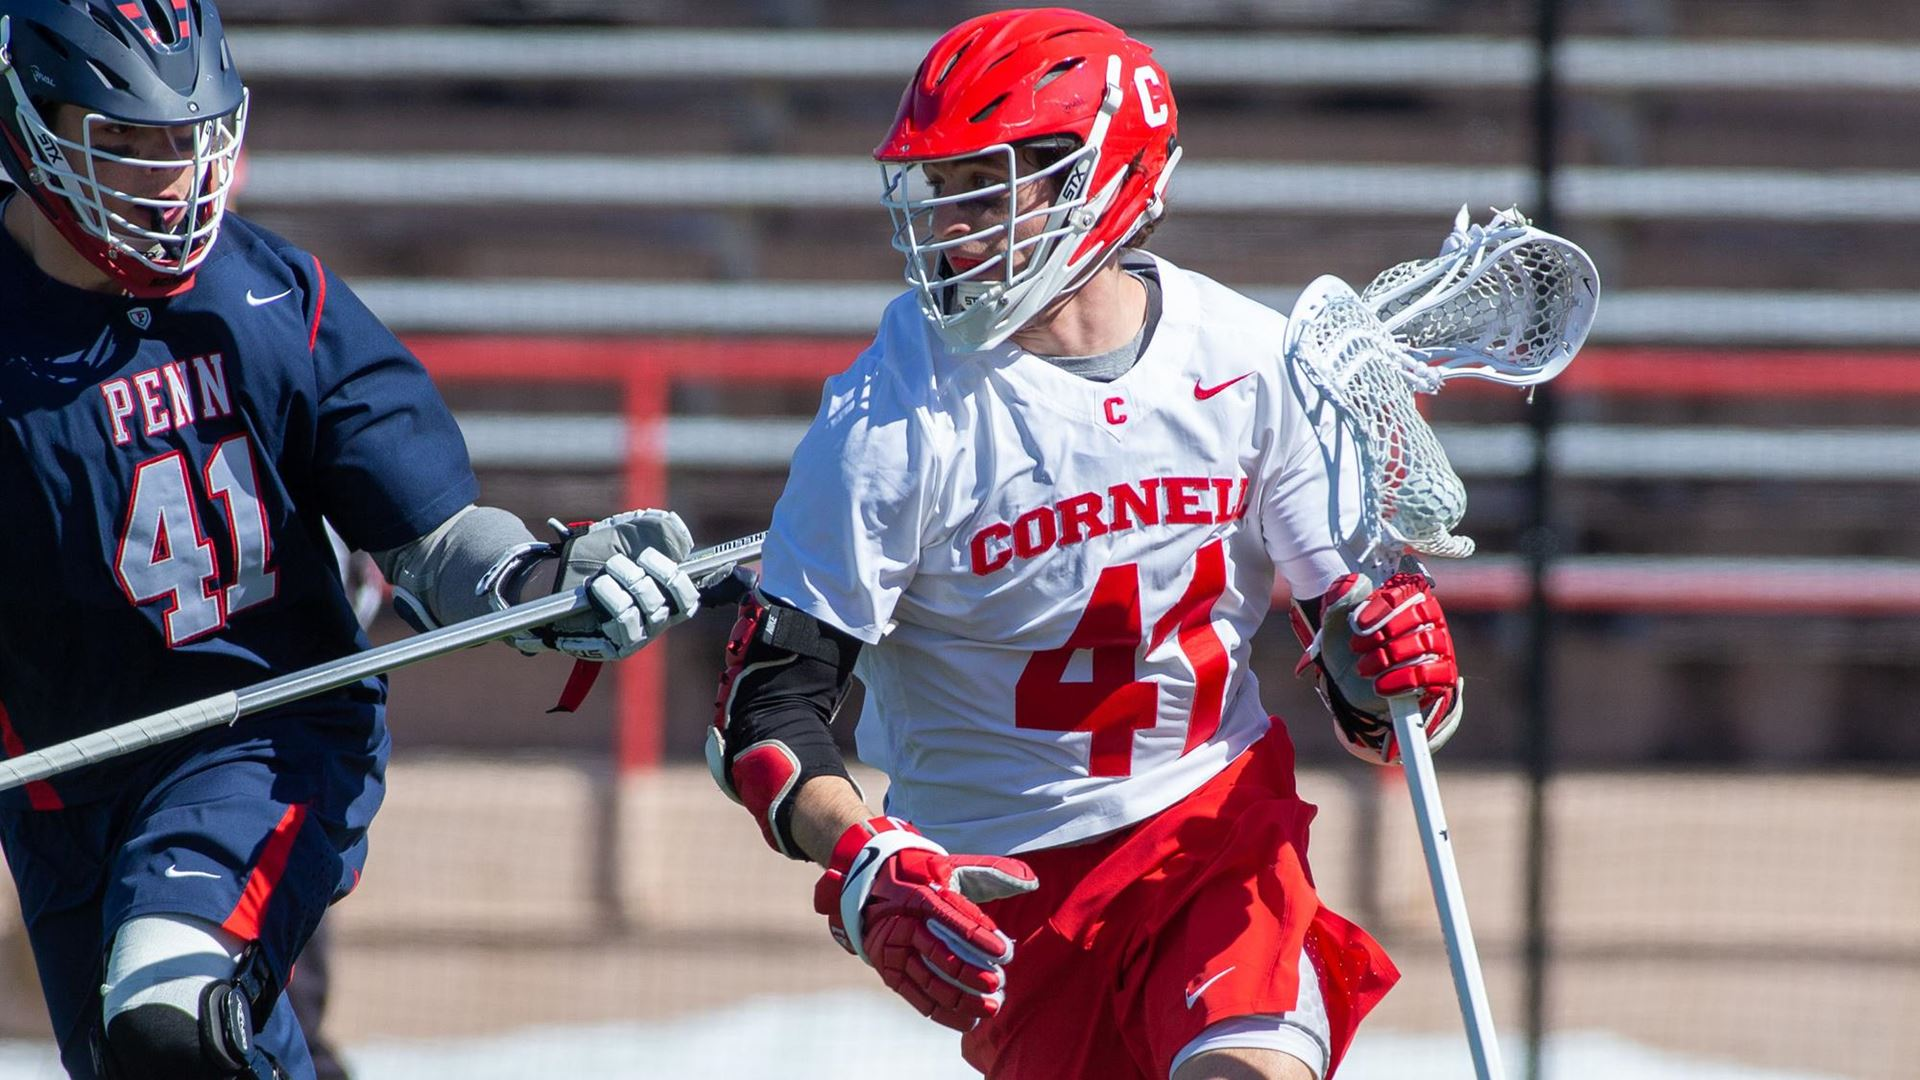 Cornell Men's Lacrosse cruises to victory over High Point